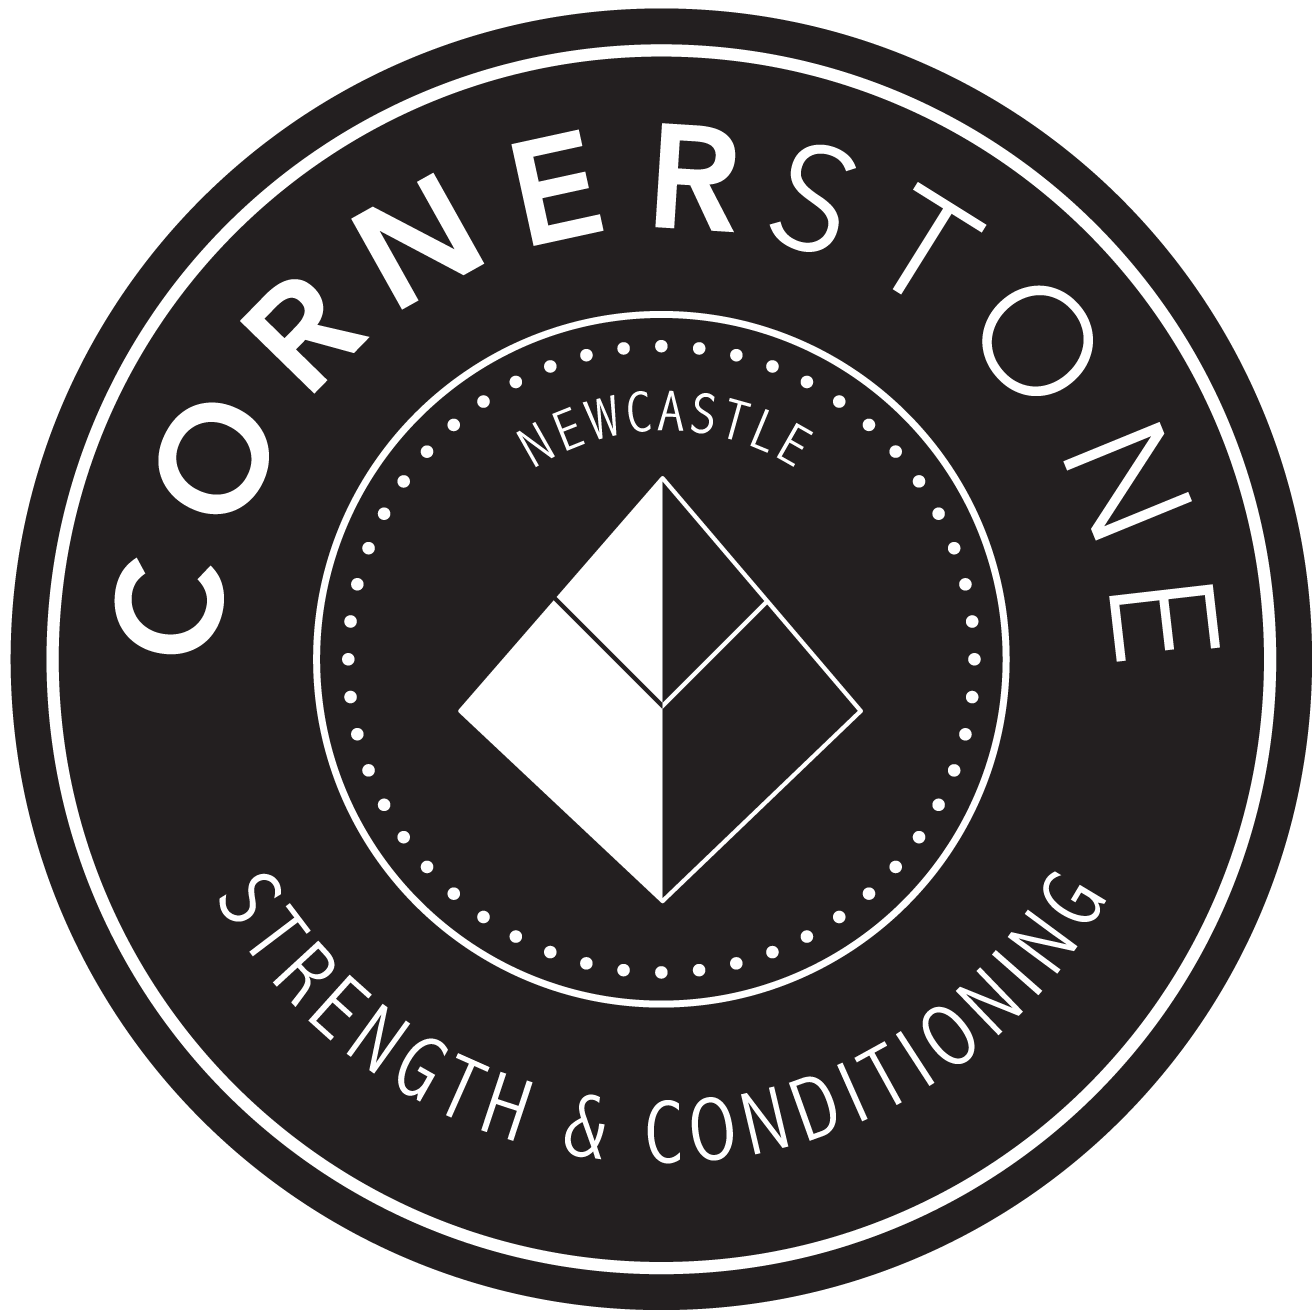 Cornerstone Strength & Conditioning